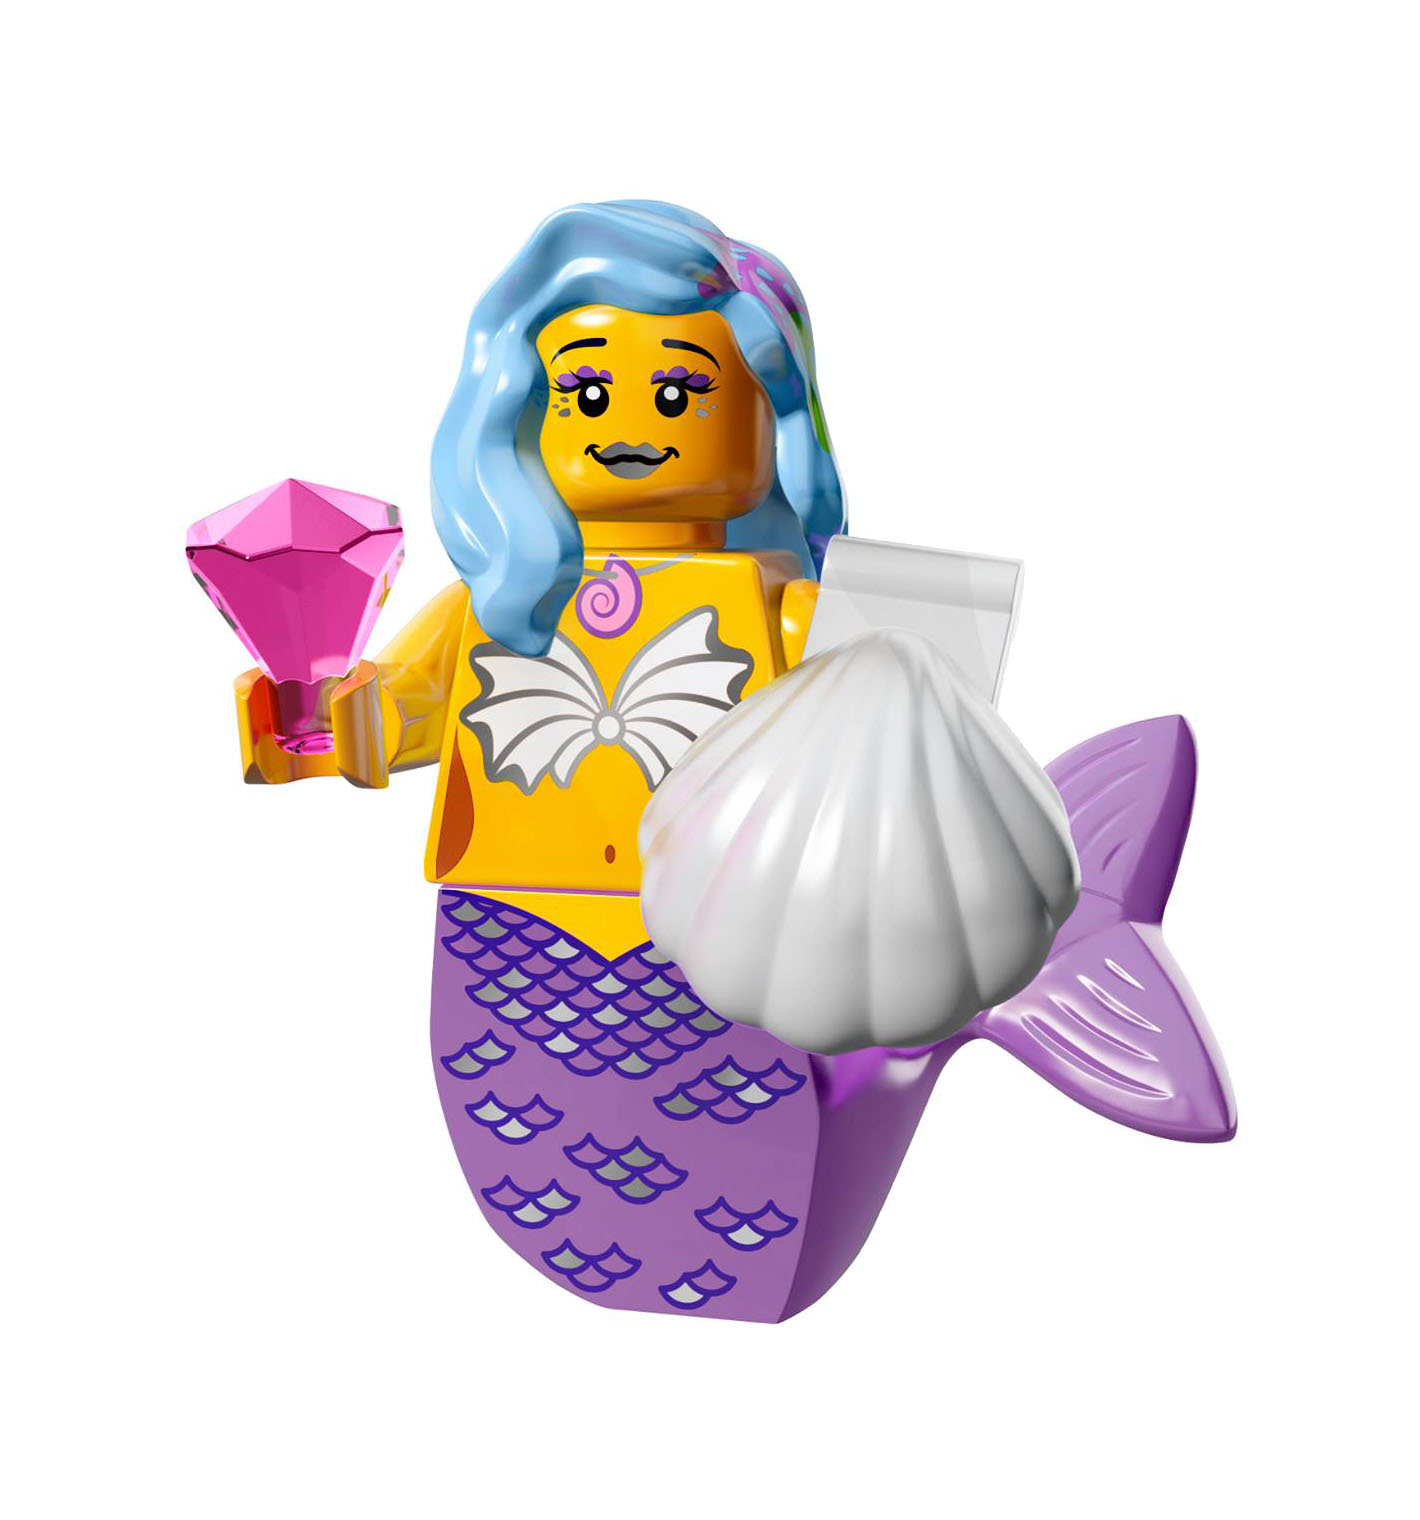 Lego intergalactic girl clipart images no background png freeuse stock Marsha Queen of the Mermaids   Brickipedia   FANDOM powered ... png freeuse stock